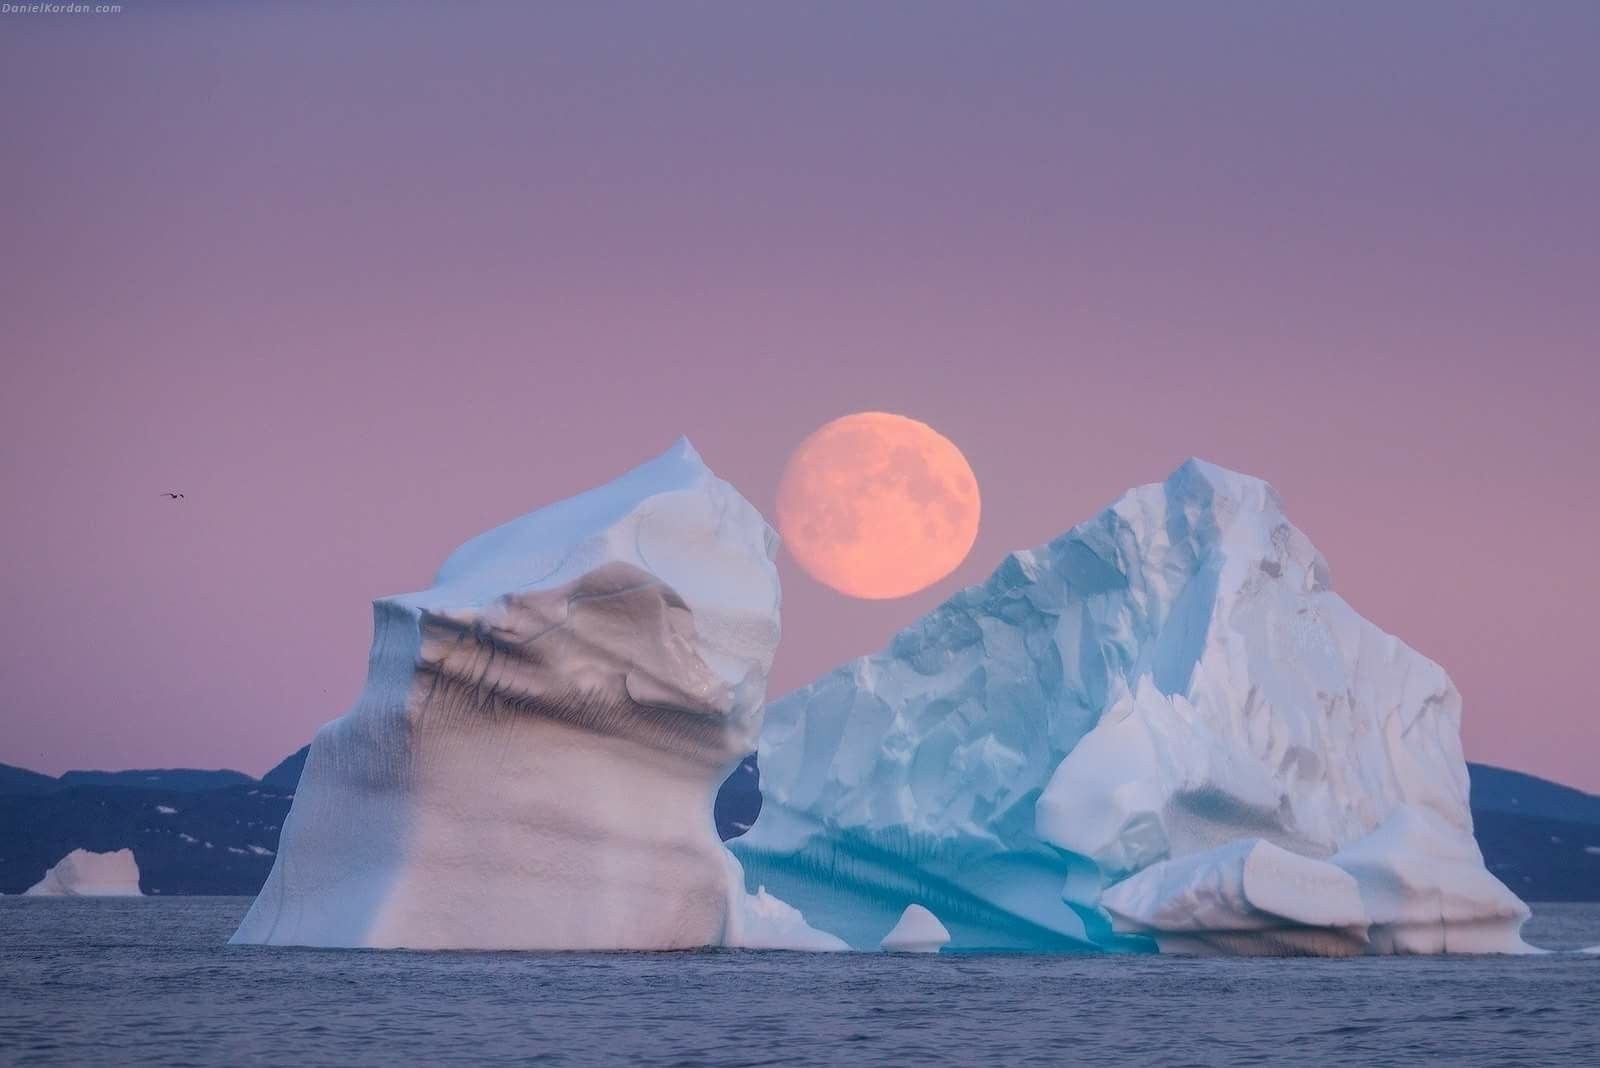 Pin by Gil Garcia on Moon Shots | Cool landscapes, Moon